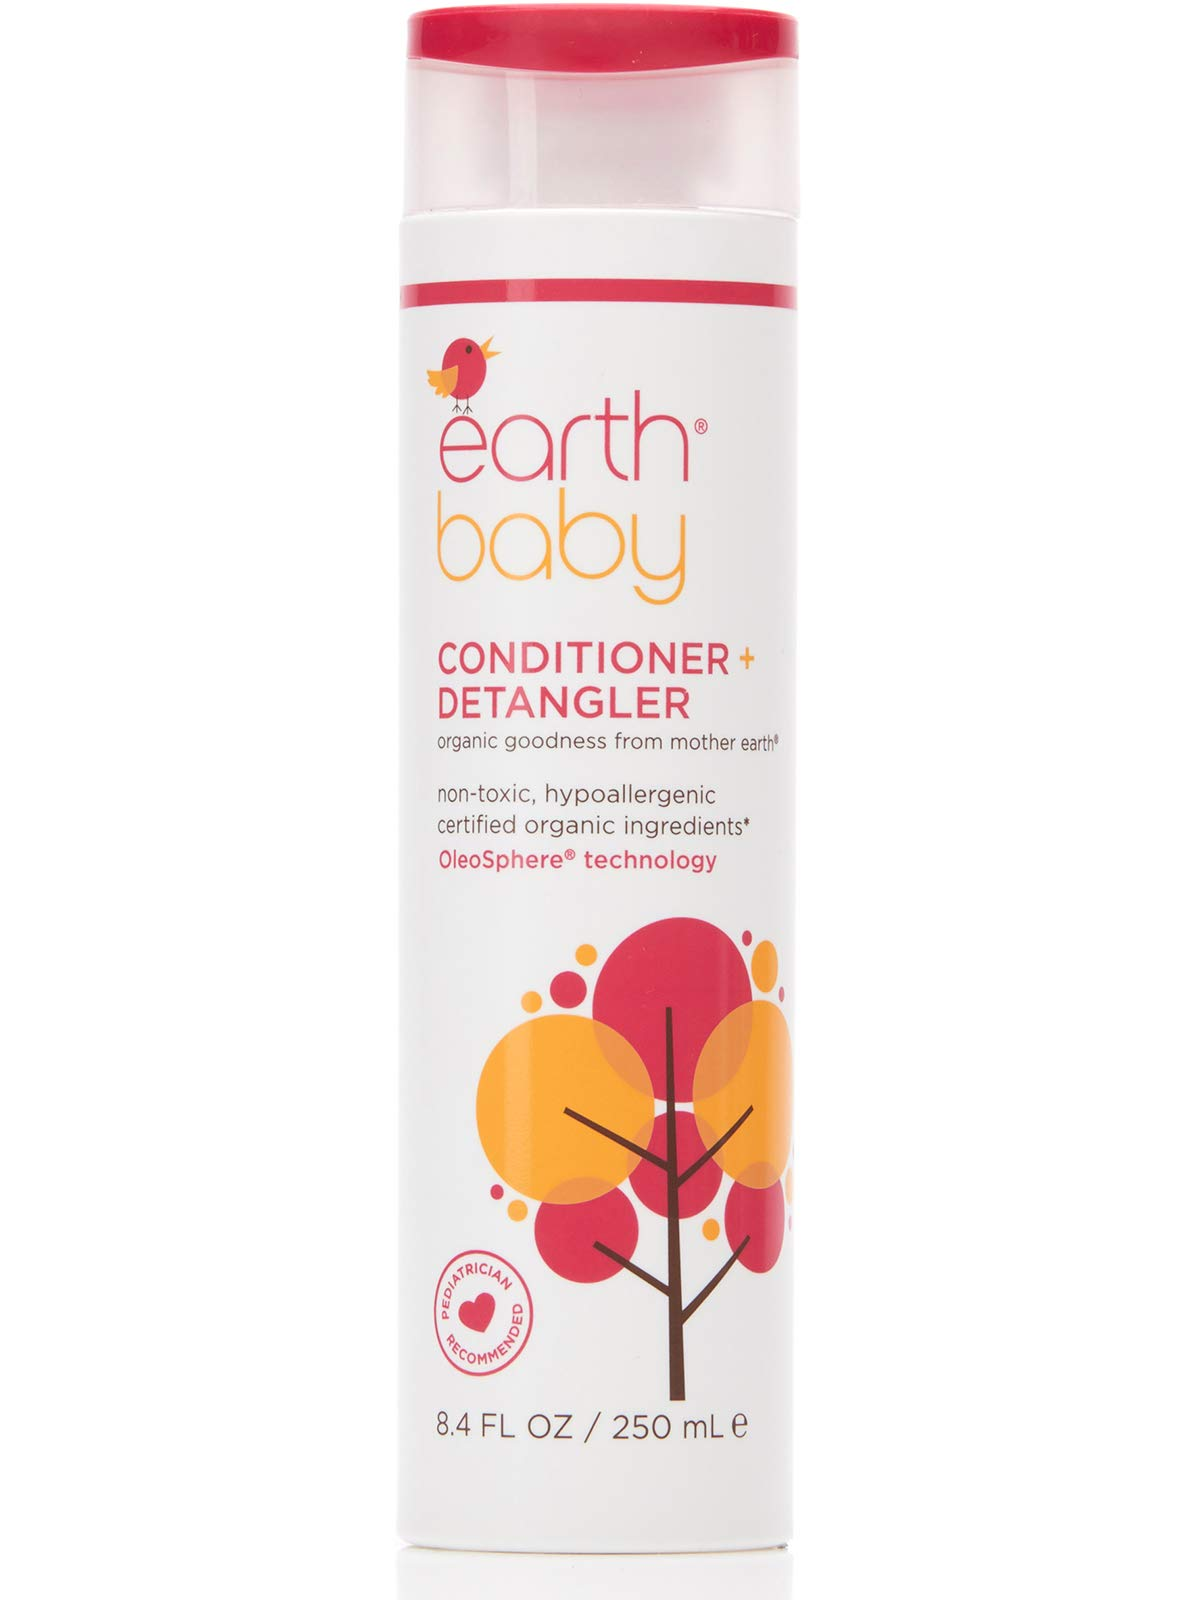 Earth Baby Conditioner + Detangler, Hypoallergenic for Sensitive Skin, Natural and Organic, for Babies Toddlers and Kids…